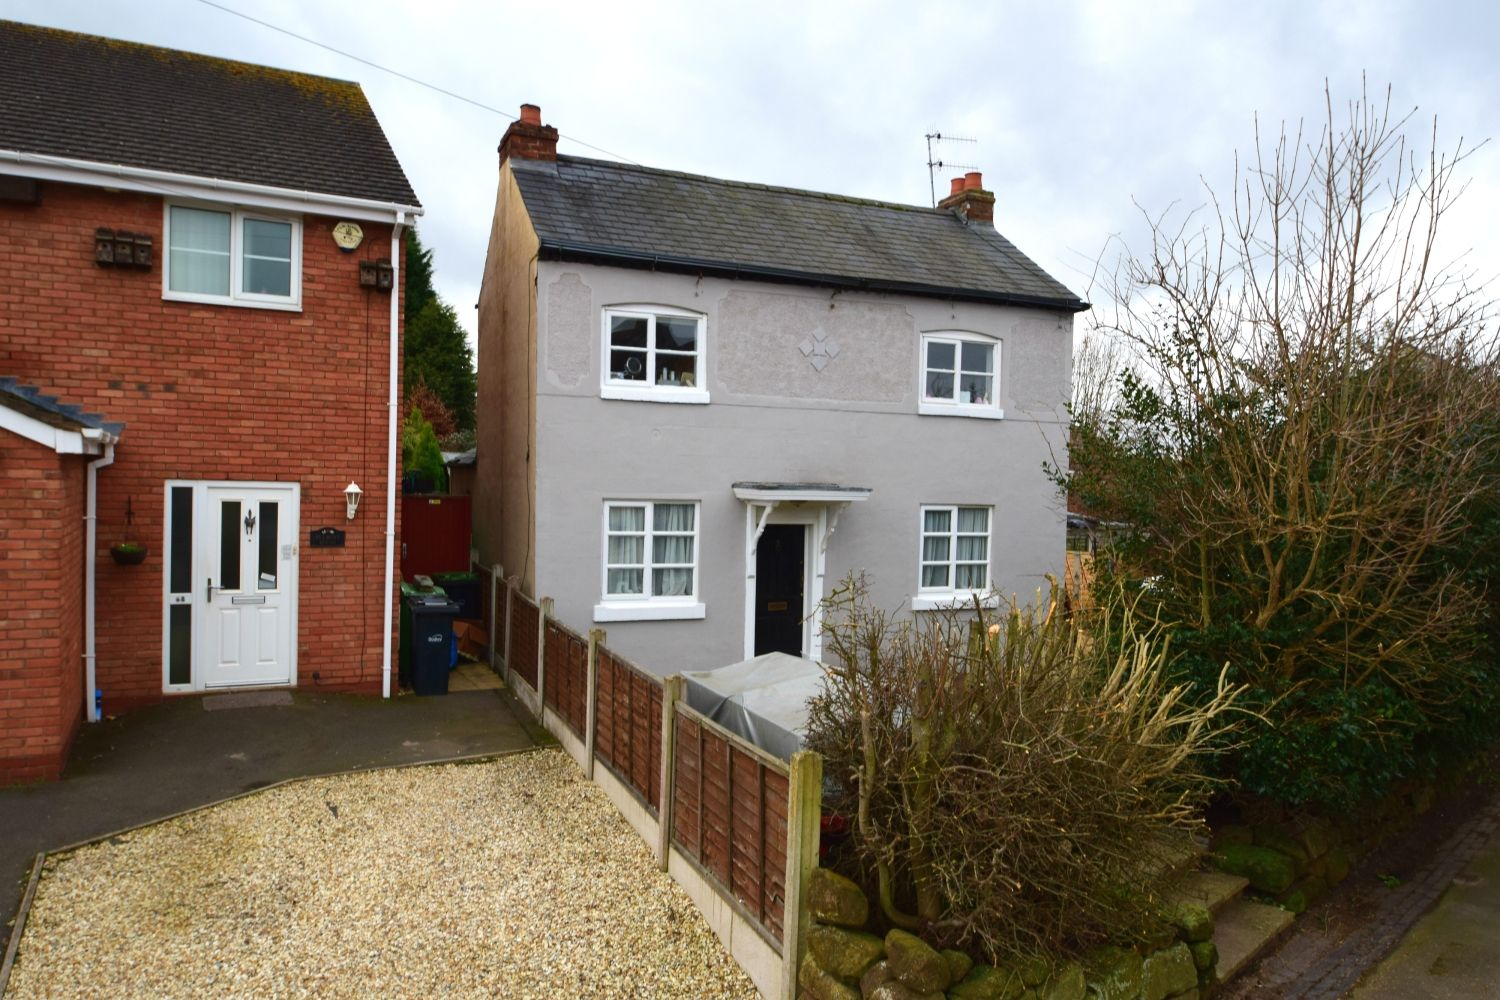 3 bed detached for sale in Belmont Road, Wollescote 1